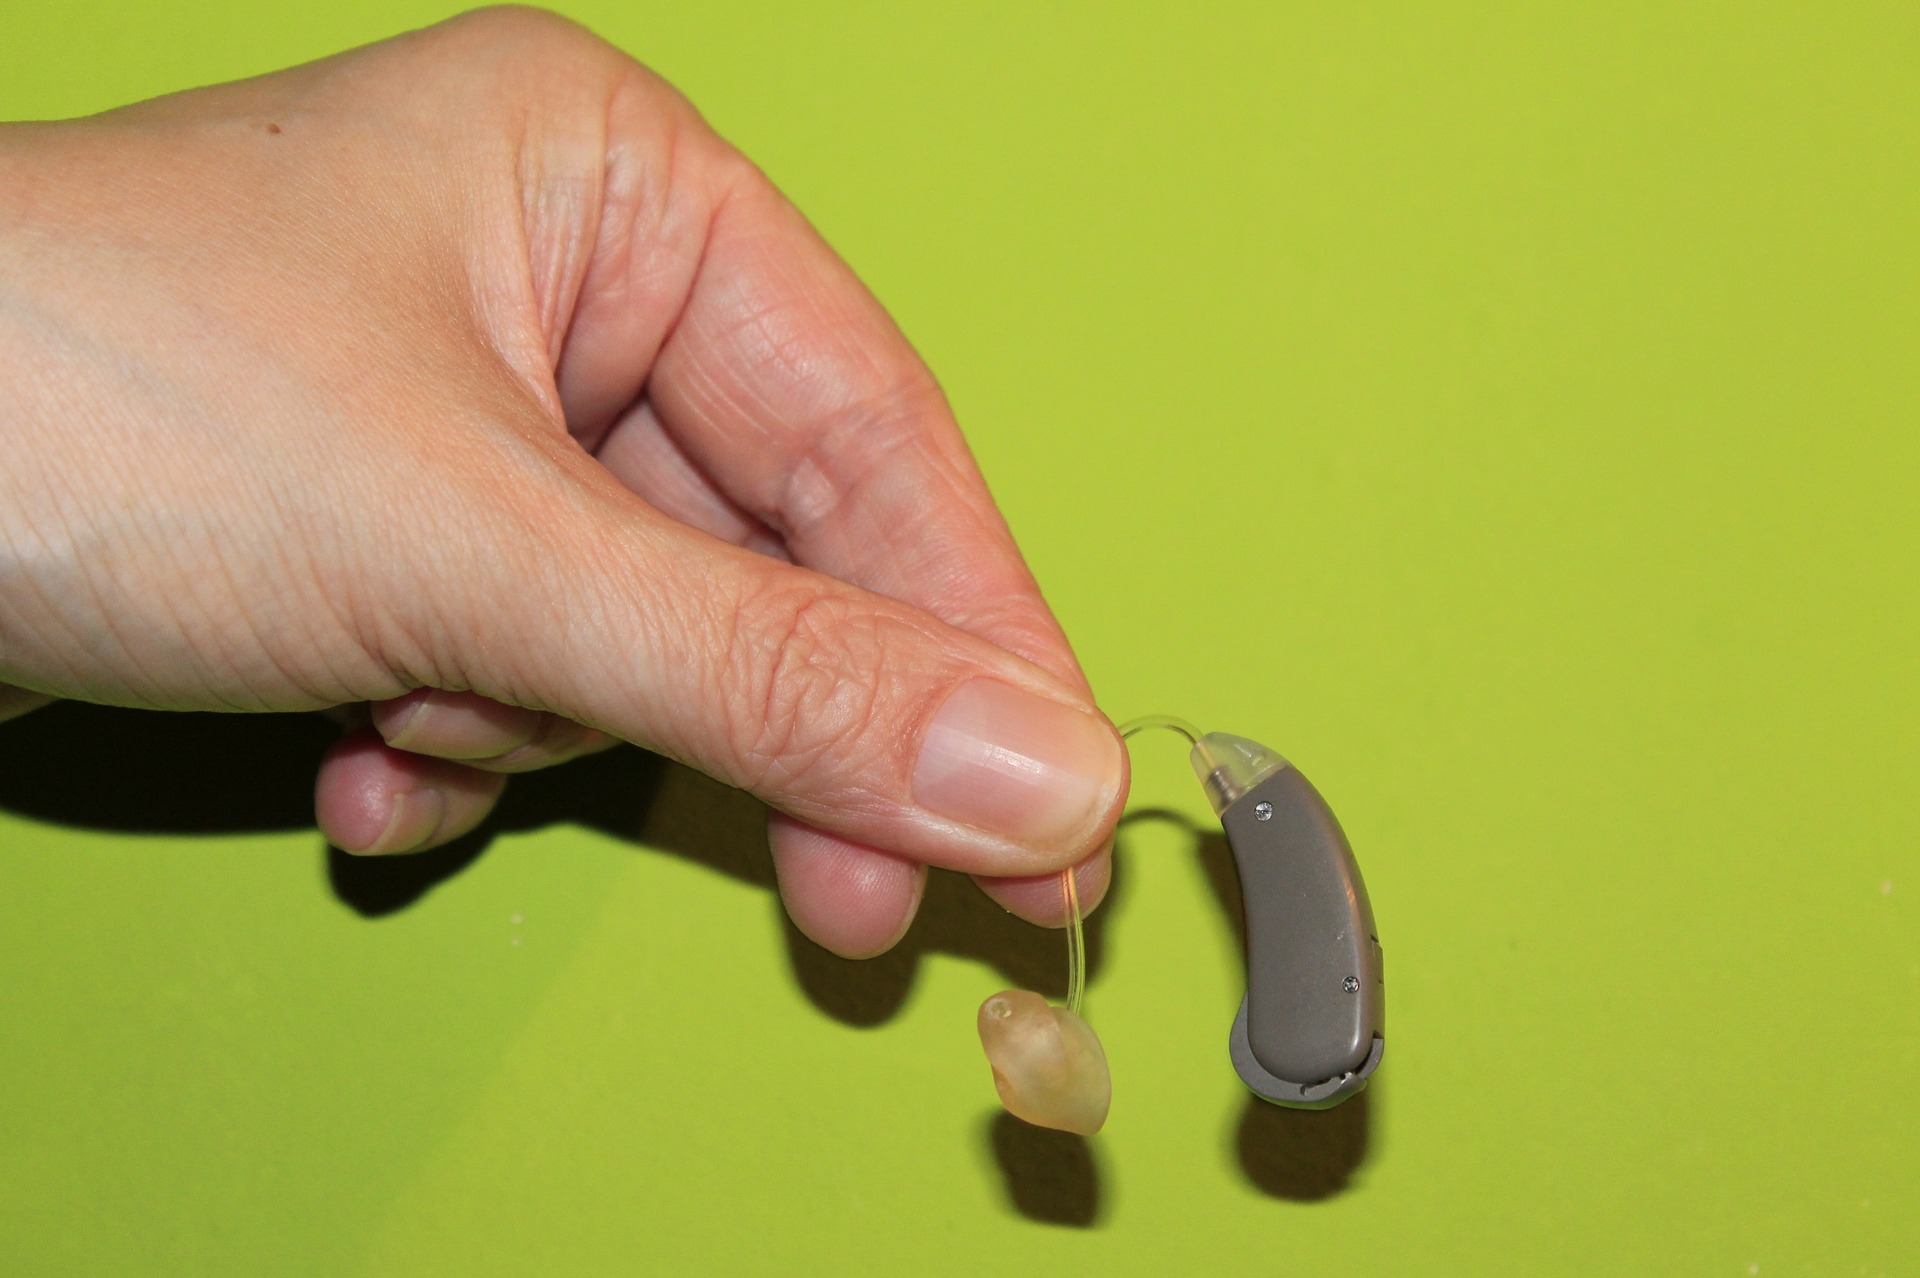 Hand holding a Hearing Aid